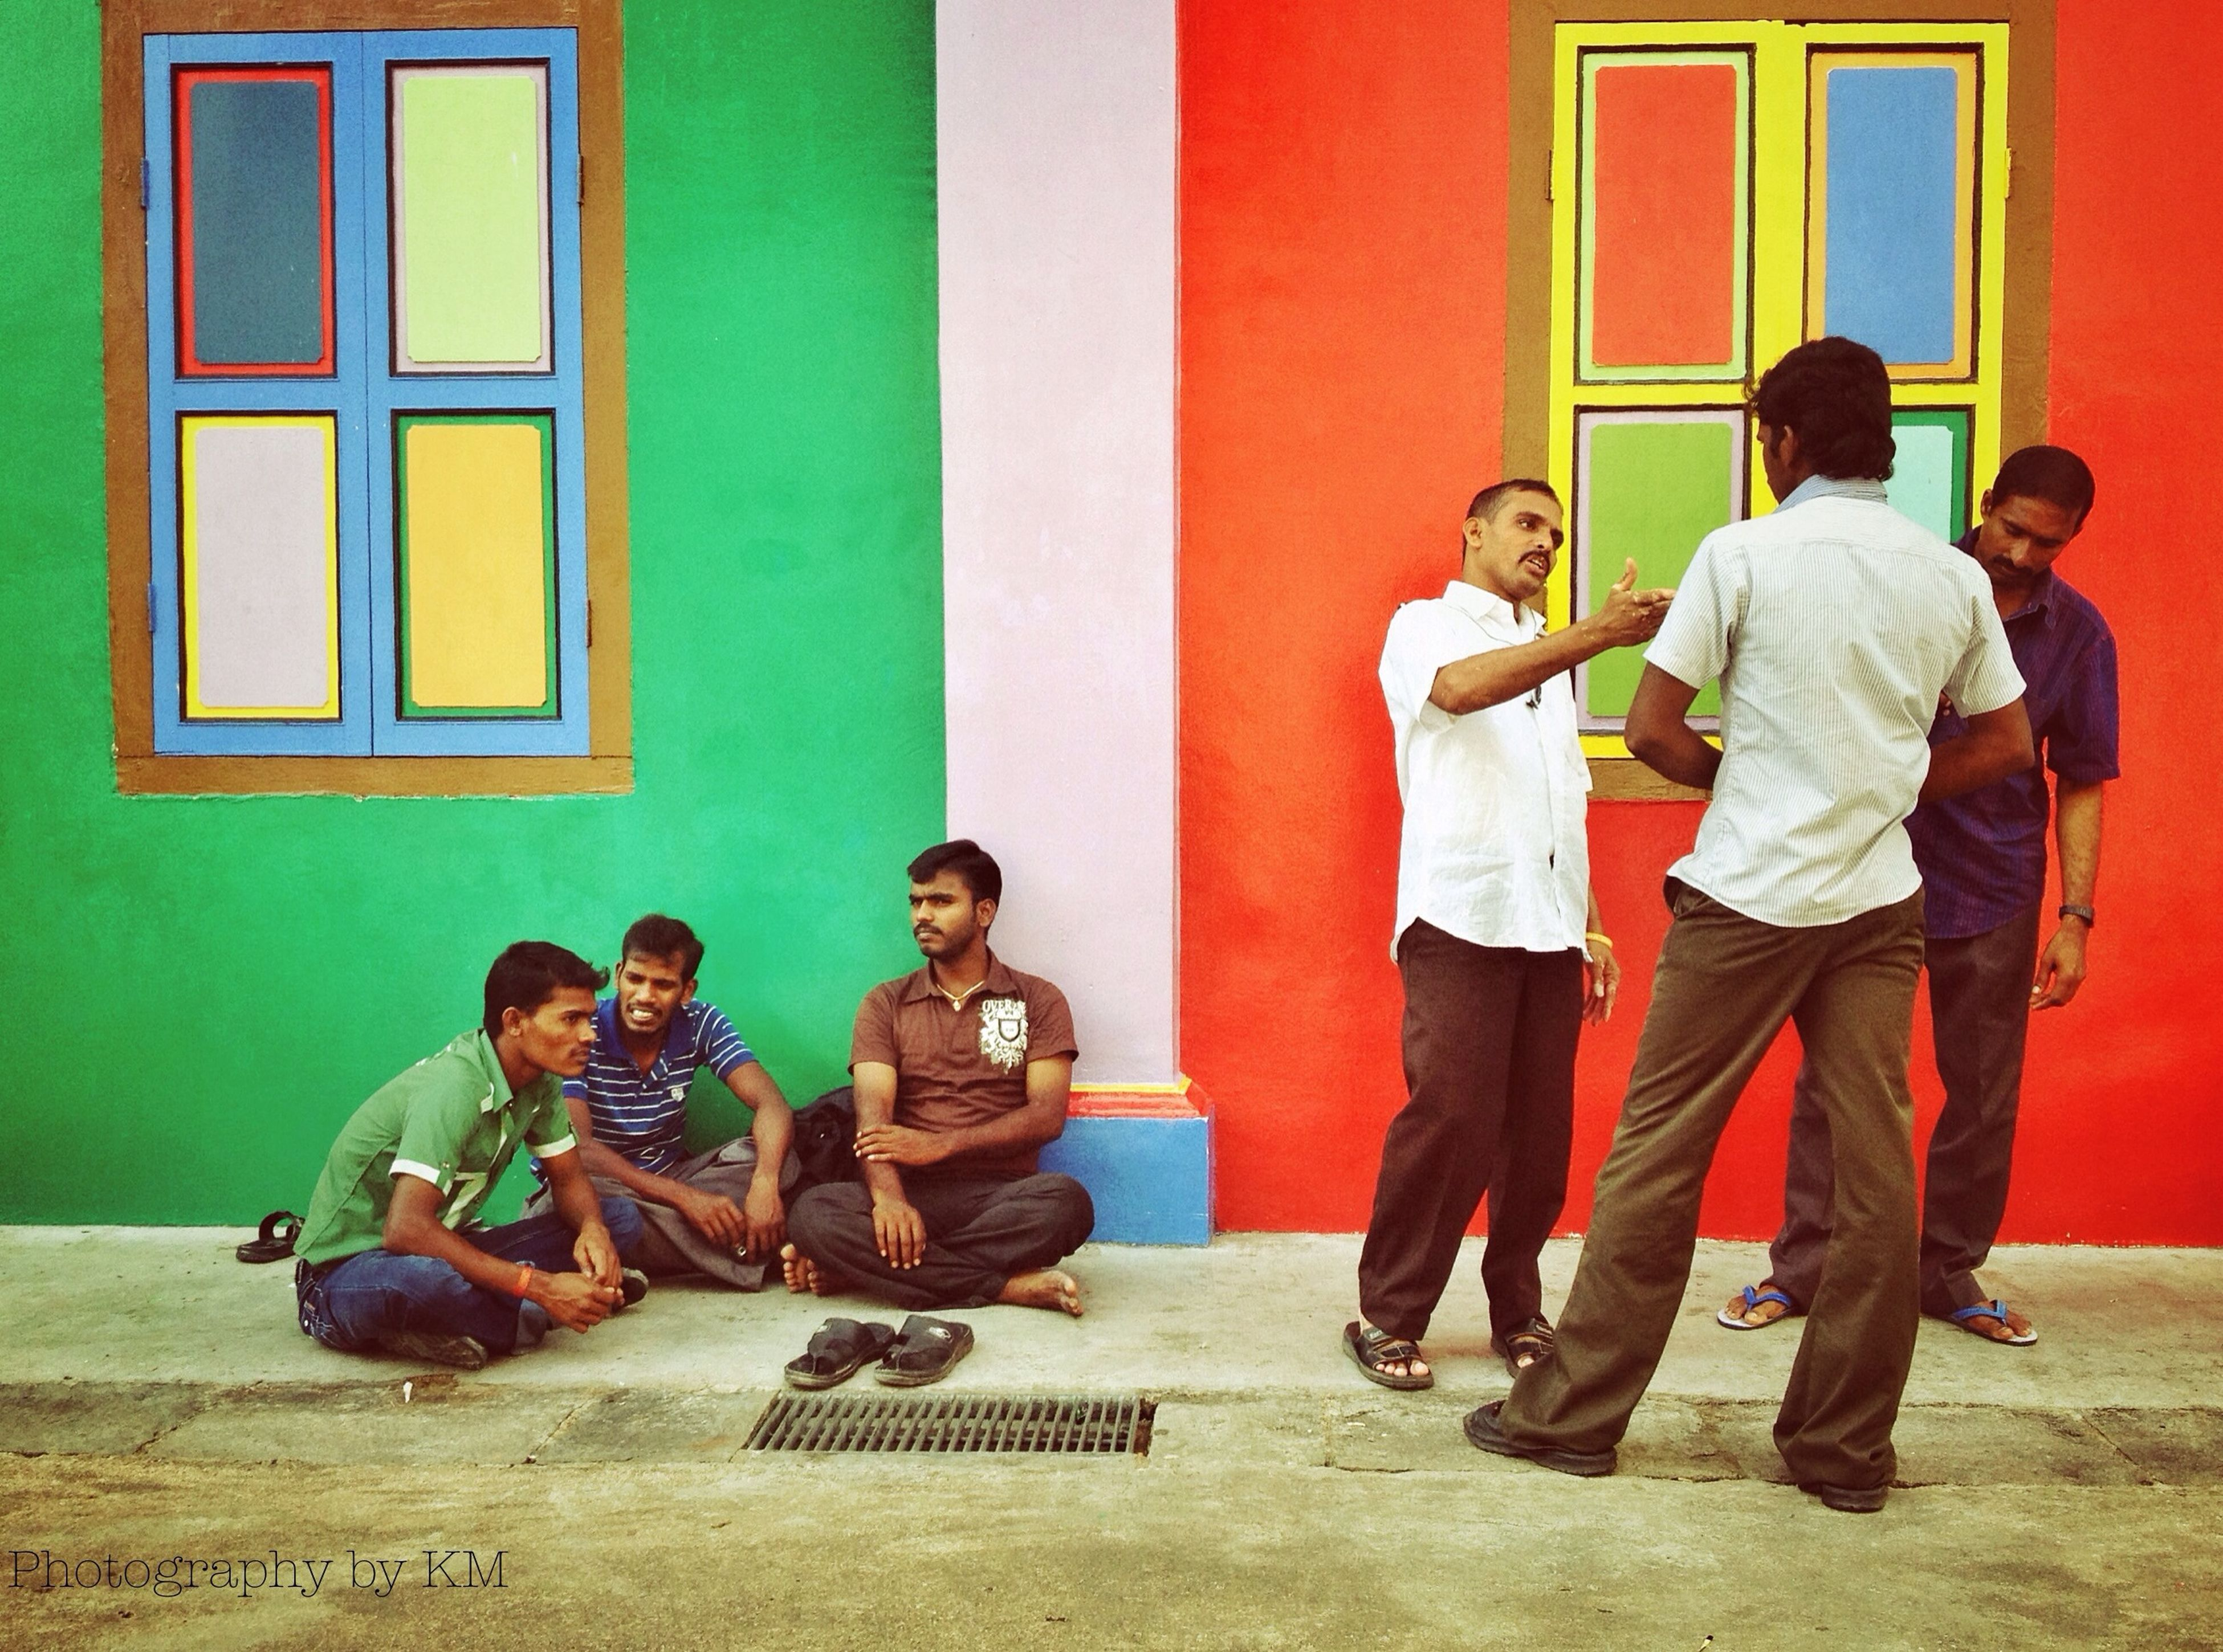 lifestyles, togetherness, leisure activity, full length, men, casual clothing, bonding, building exterior, sitting, architecture, boys, built structure, love, friendship, childhood, person, family